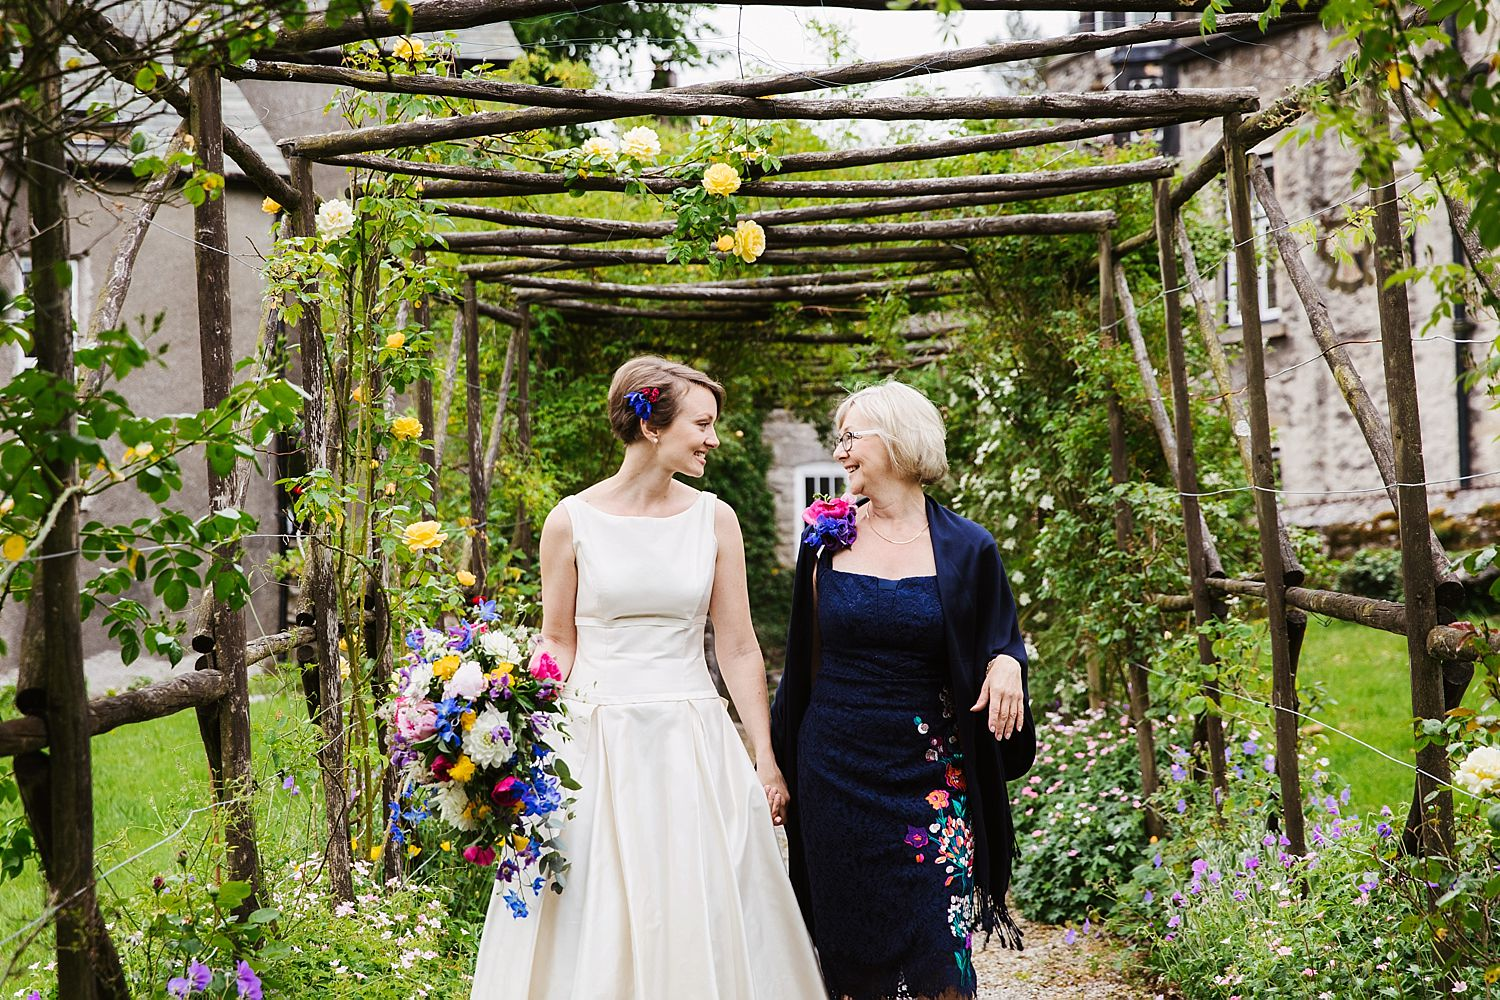 Bride and her mum, exchange a smile as they walk through floral pergola to wedding at Park House Barn in South Lakeland. Floristry by Carmen